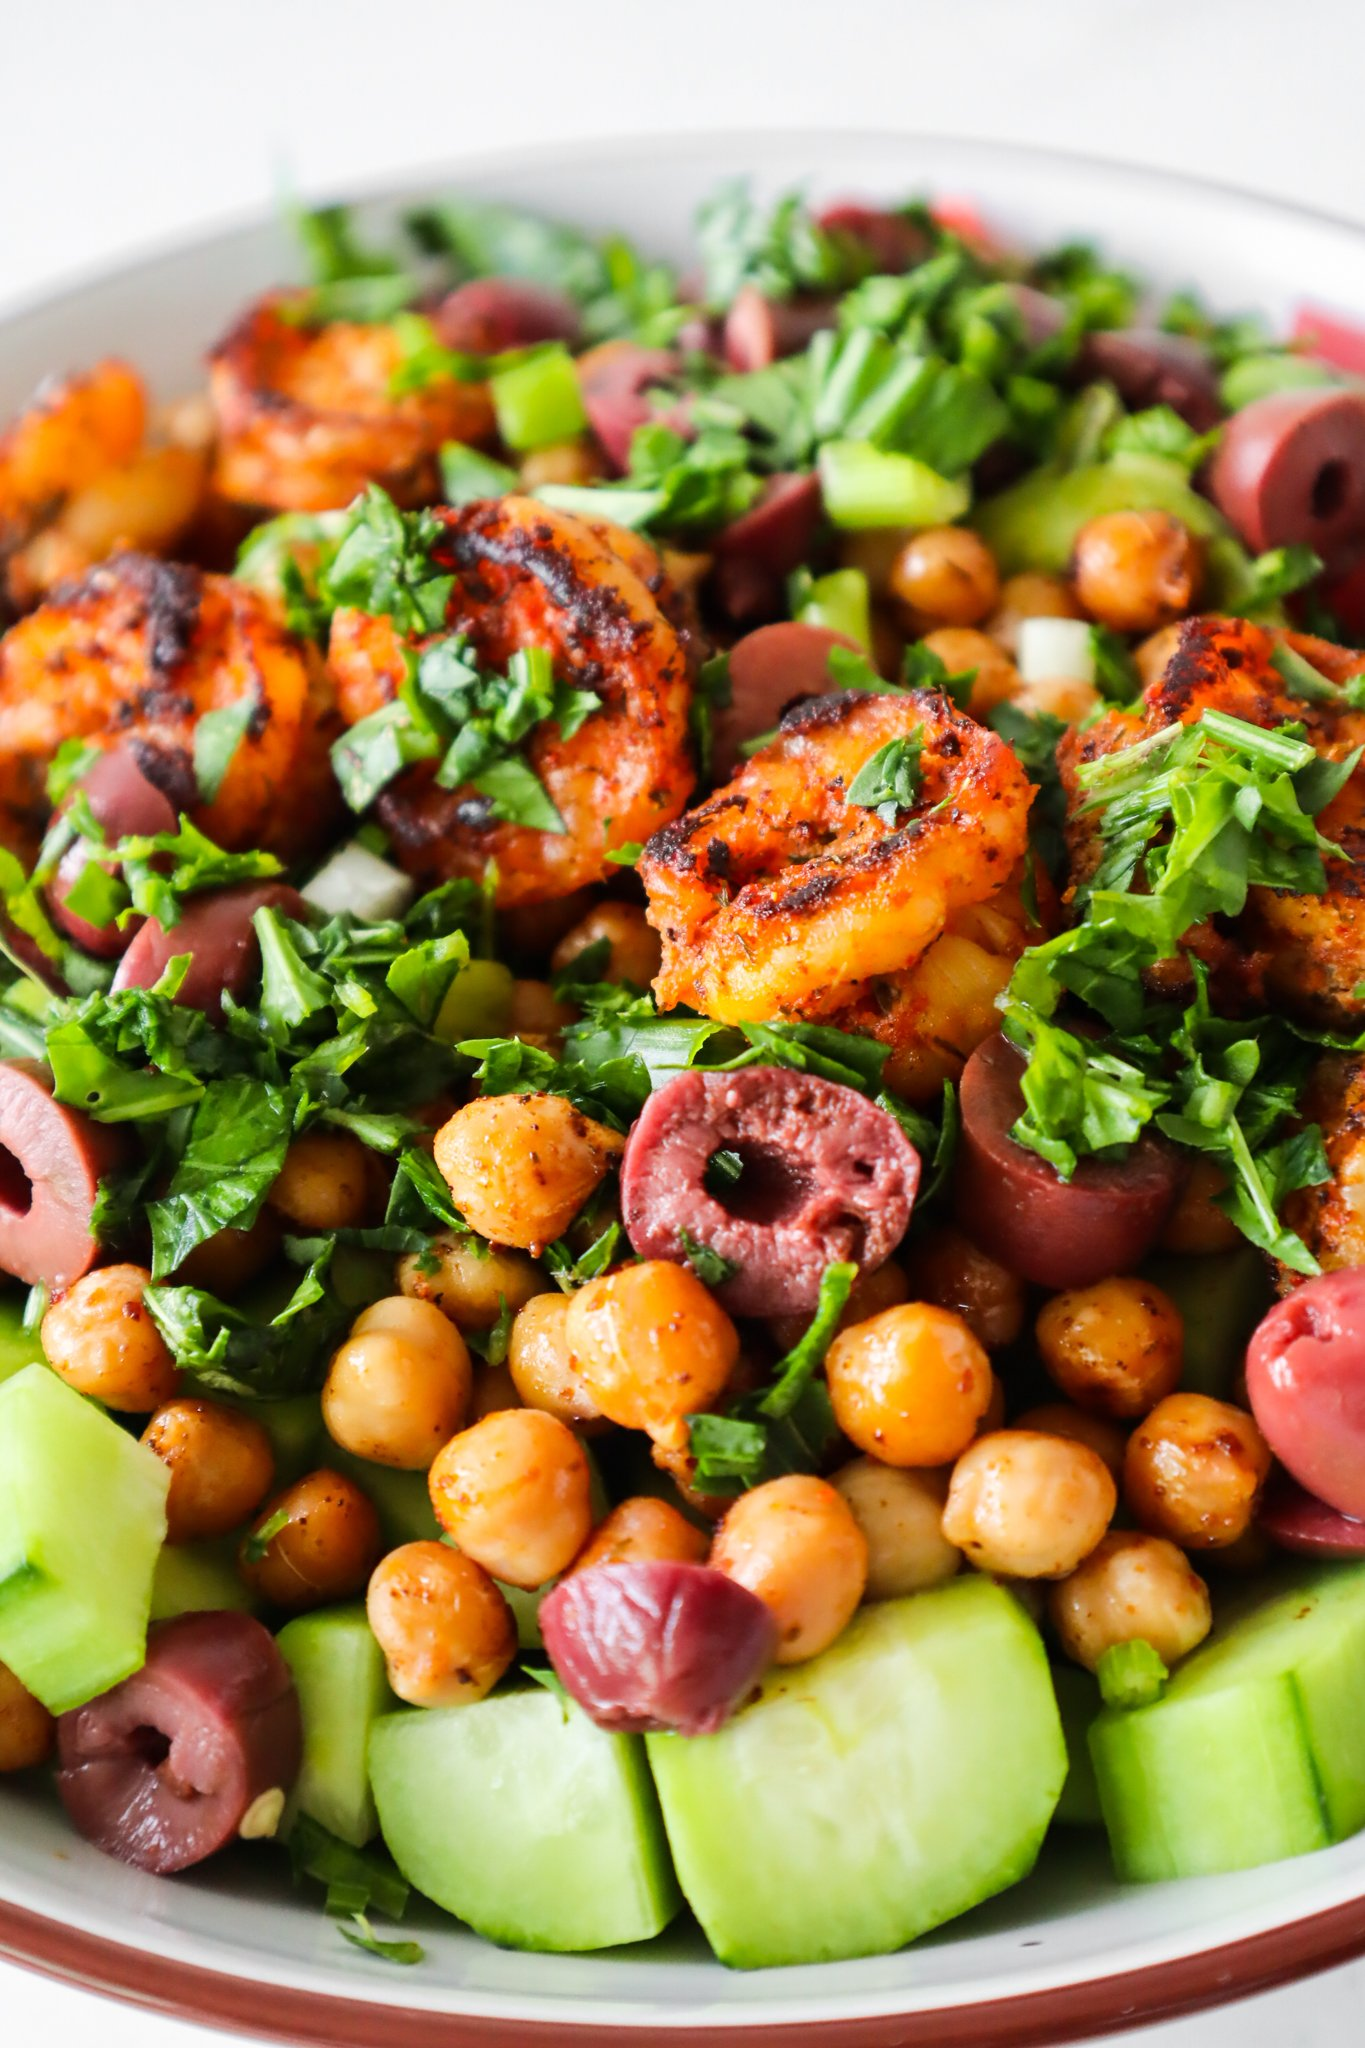 Get your ingredients and make this spicy shrimp and chickpea salad, it's a great meal prep lunch recipe and you're going to love it. This healthy salad that is super fresh and flavorful, such a satisfying and such an easy lunch idea that is ready in no time.